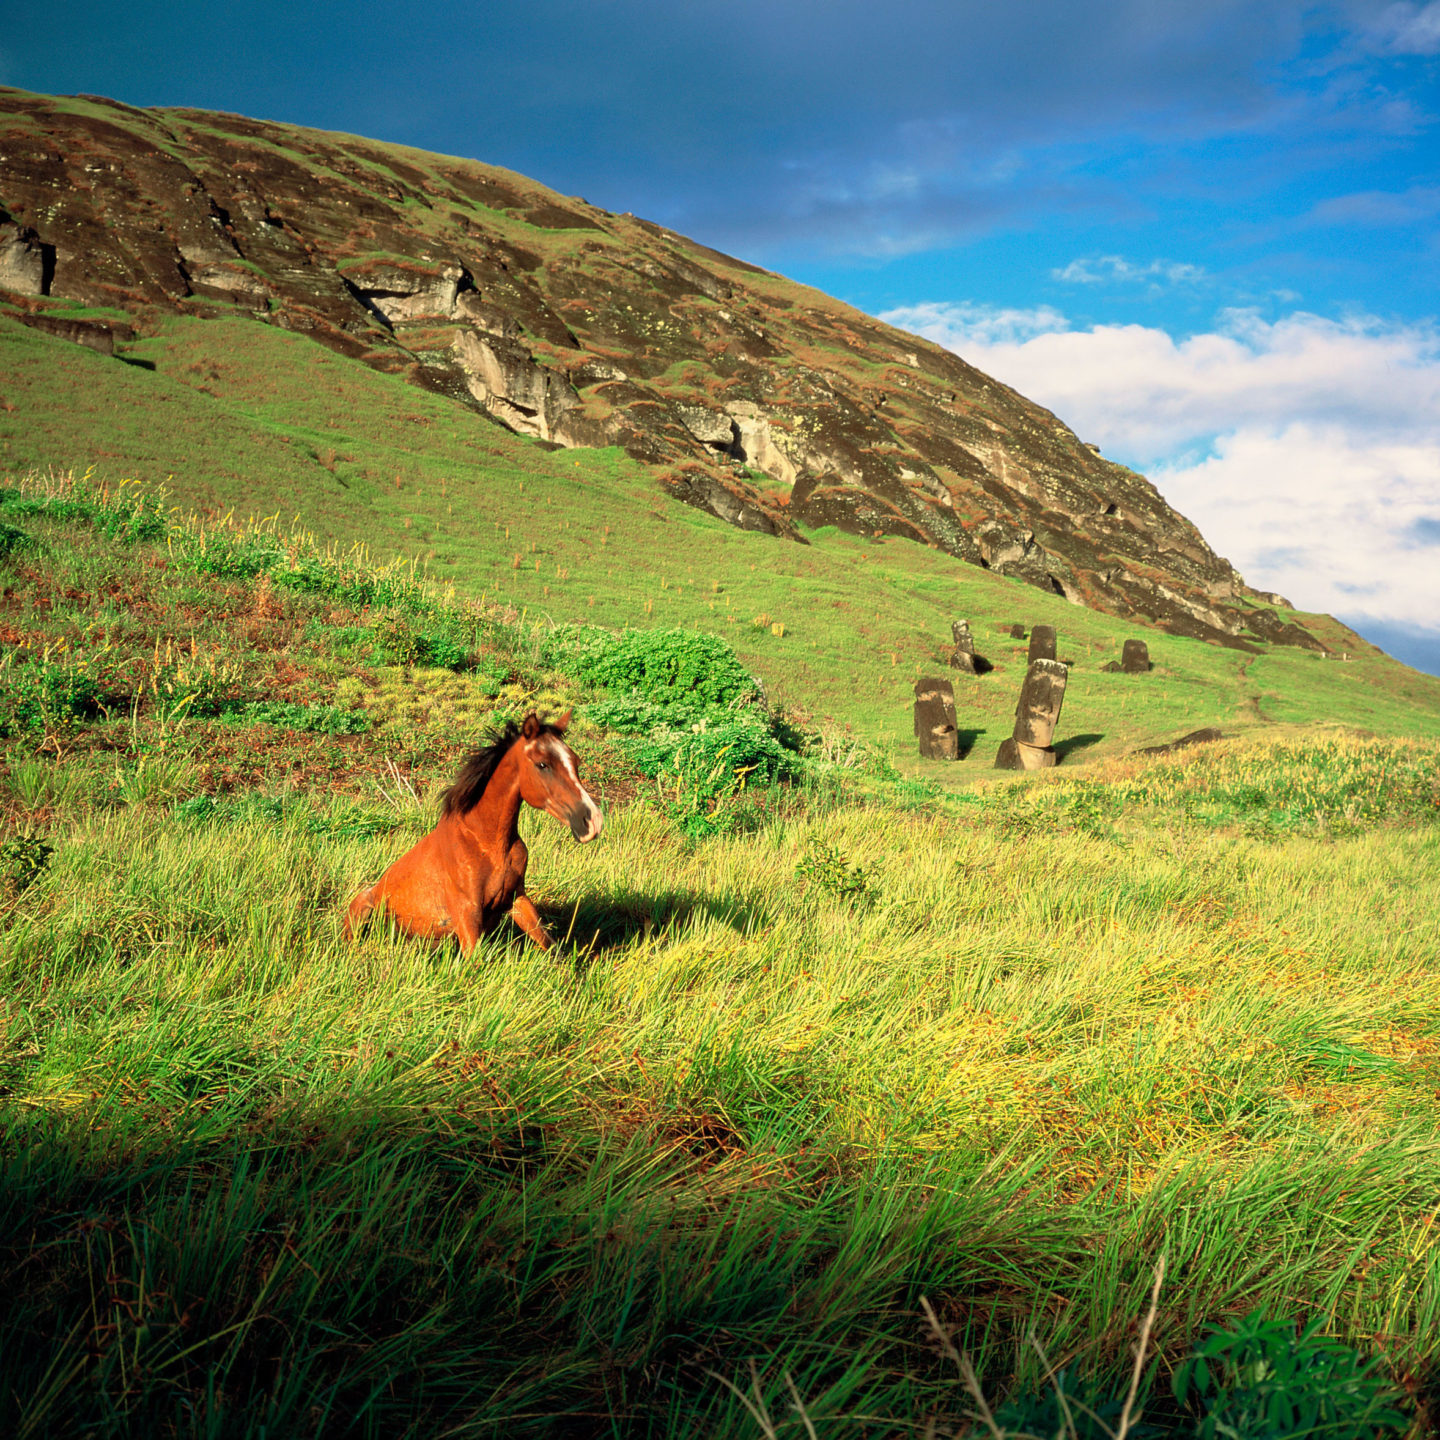 Young wild horse awaking in the Moais of Easter Island by Franck Socha